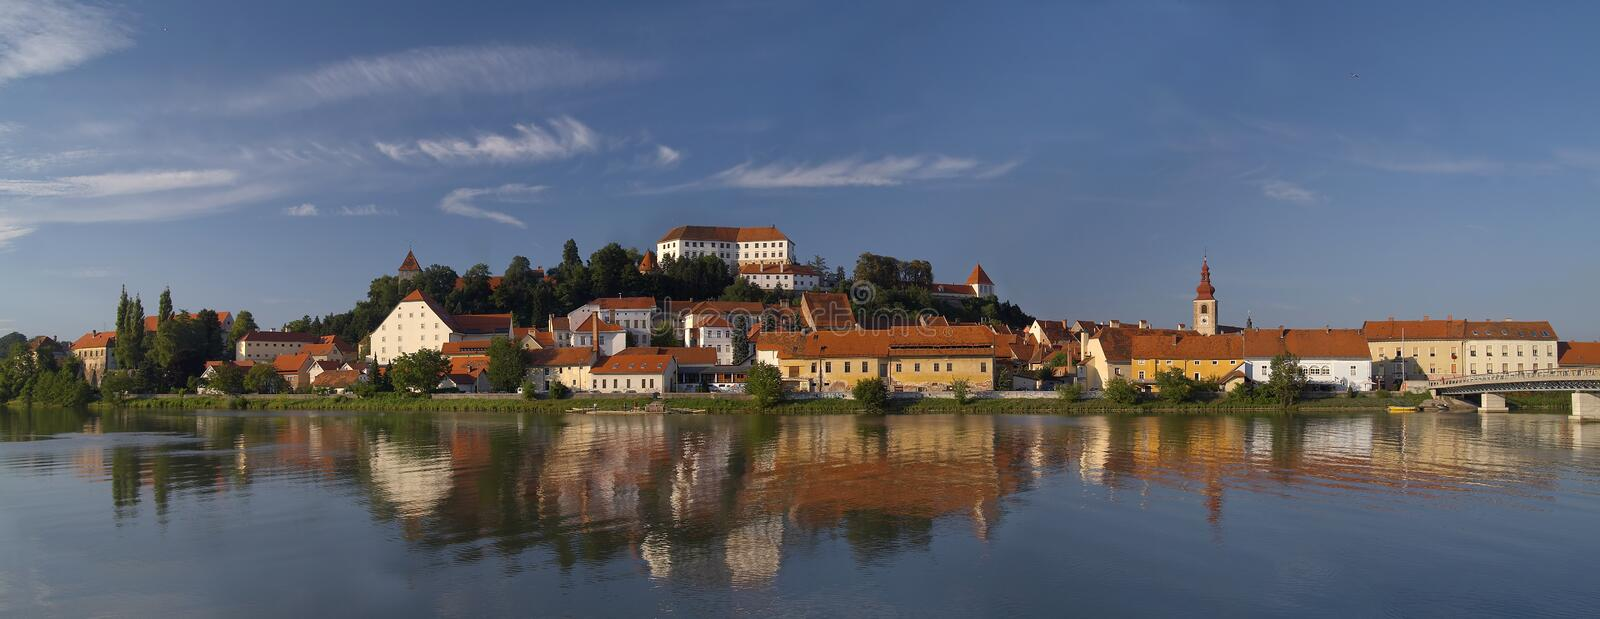 Ville Ptuj photos stock